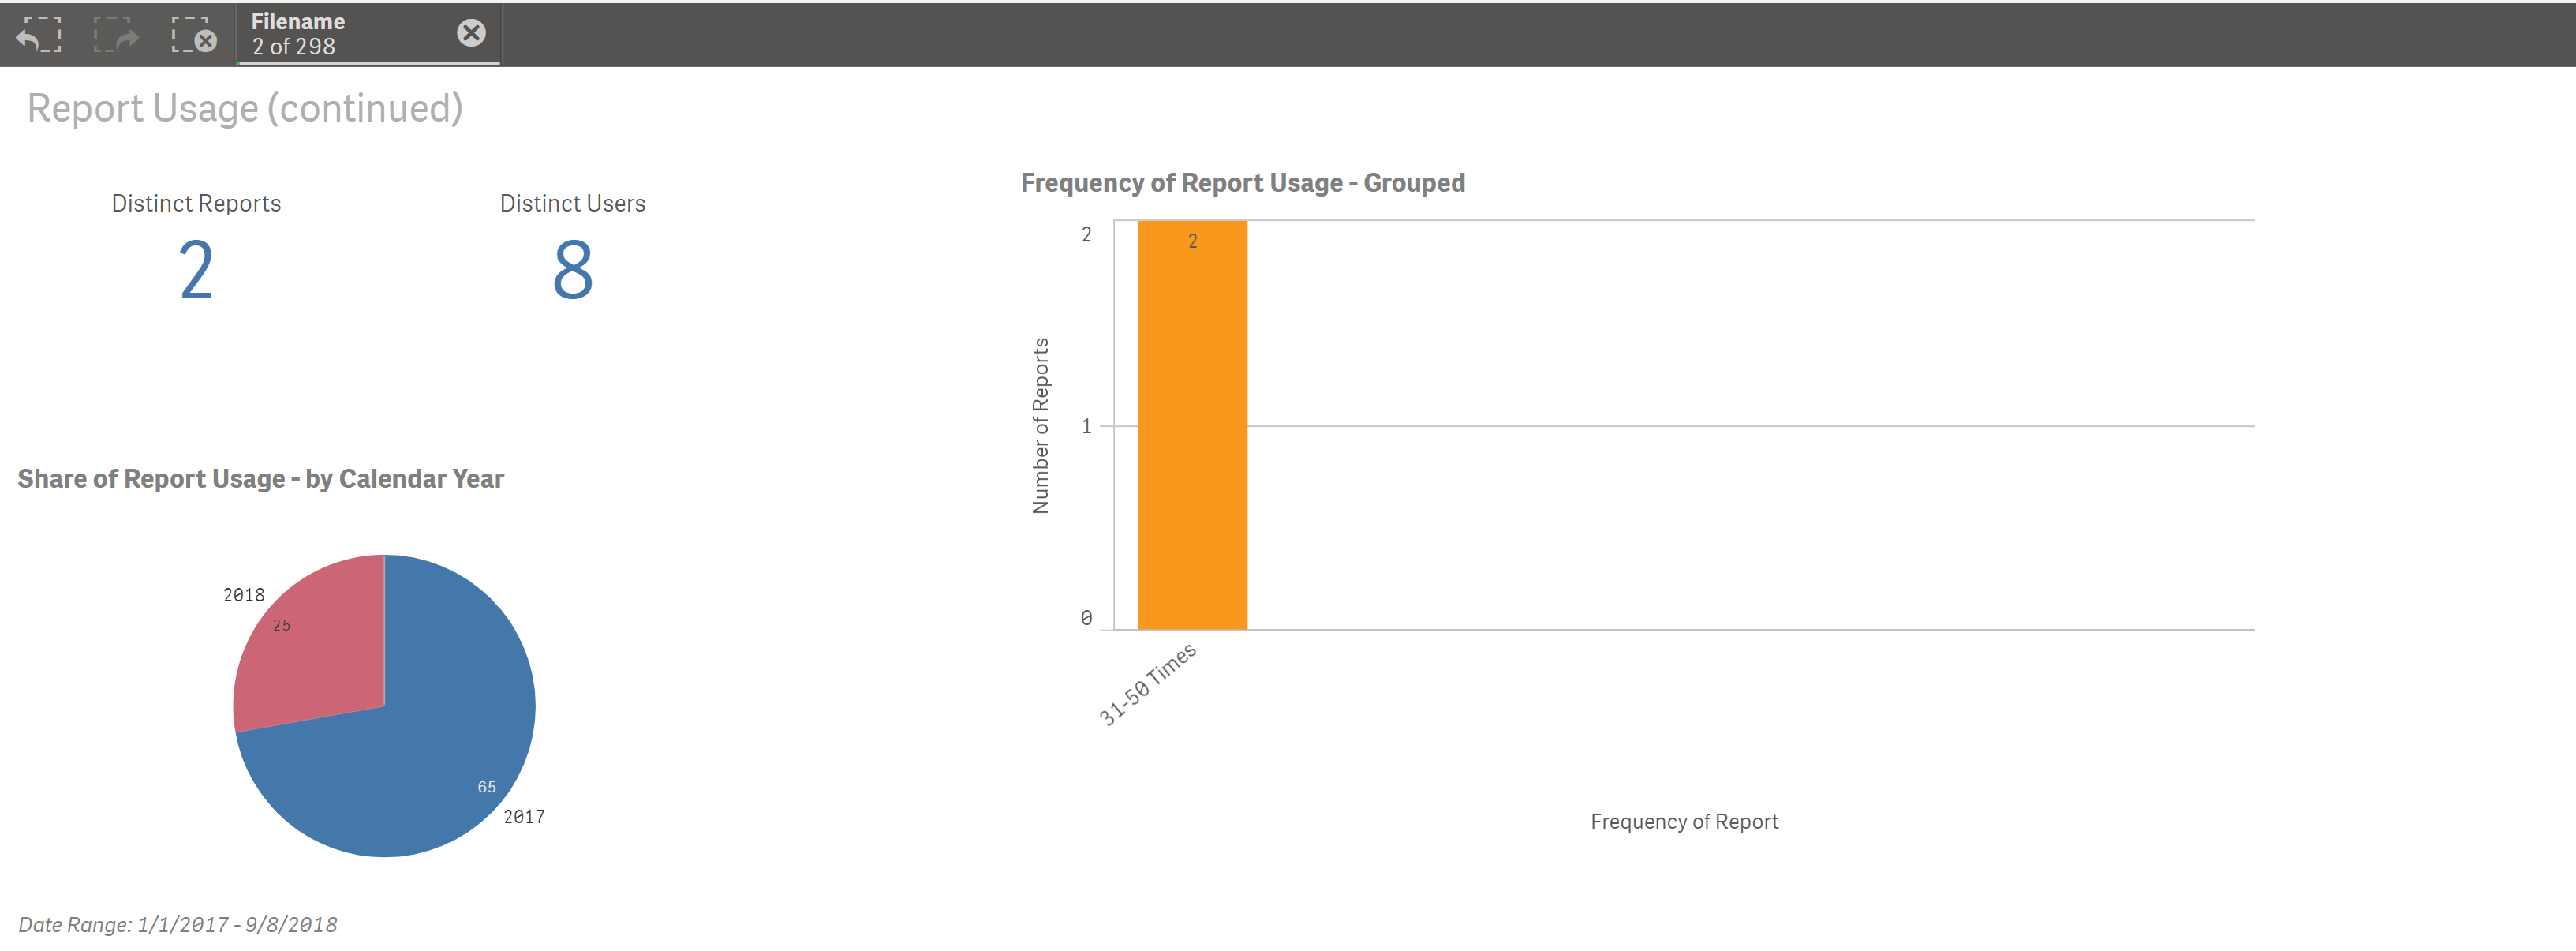 2018-10-17 14_24_38-Enterprise Reports Usage - Report Usage (continued) _ Sheets - Qlik Sense.png